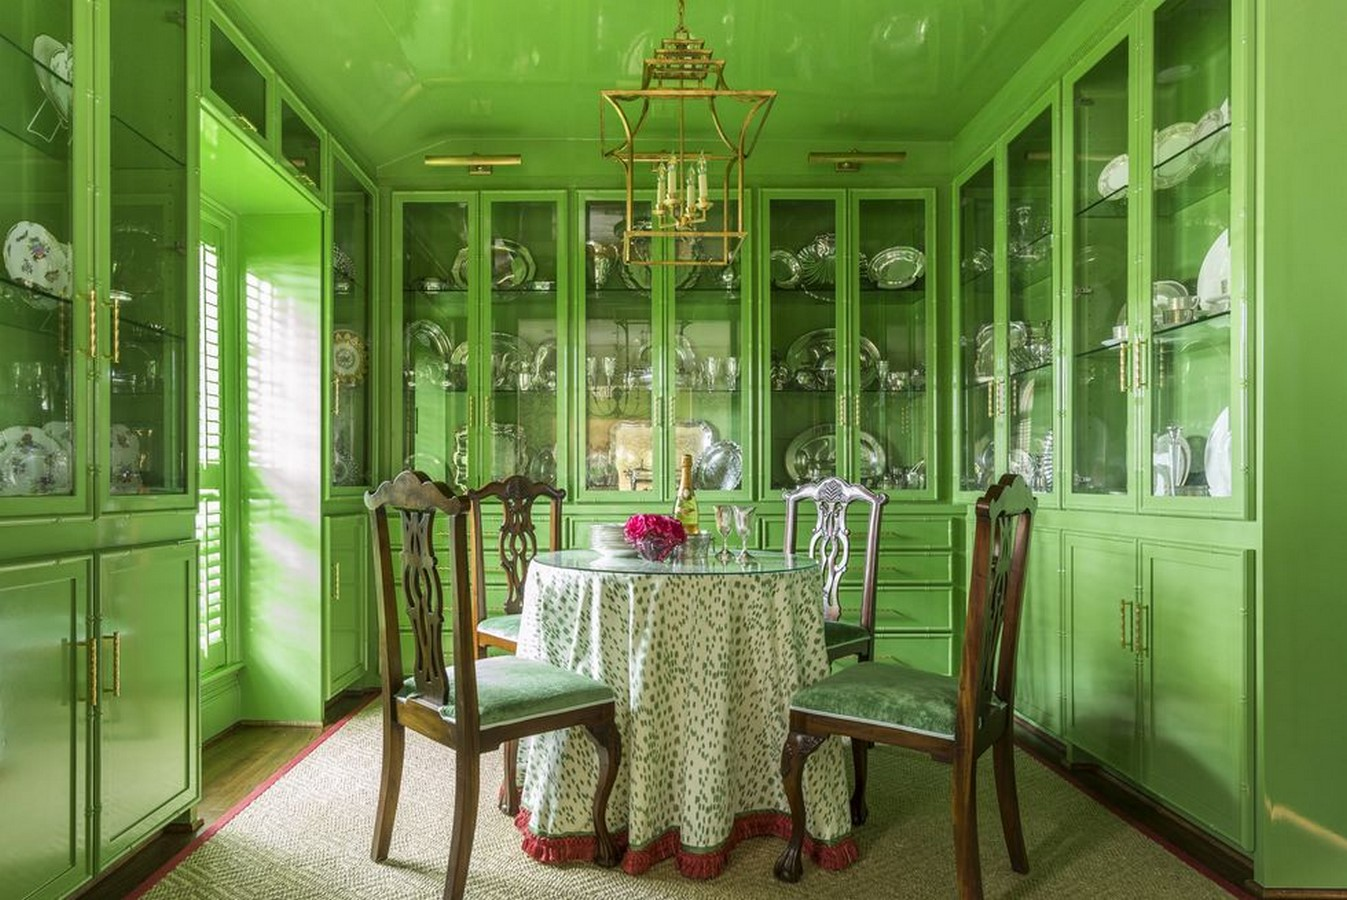 10 Dining rooms ideas that can enhance the space - Sheet10